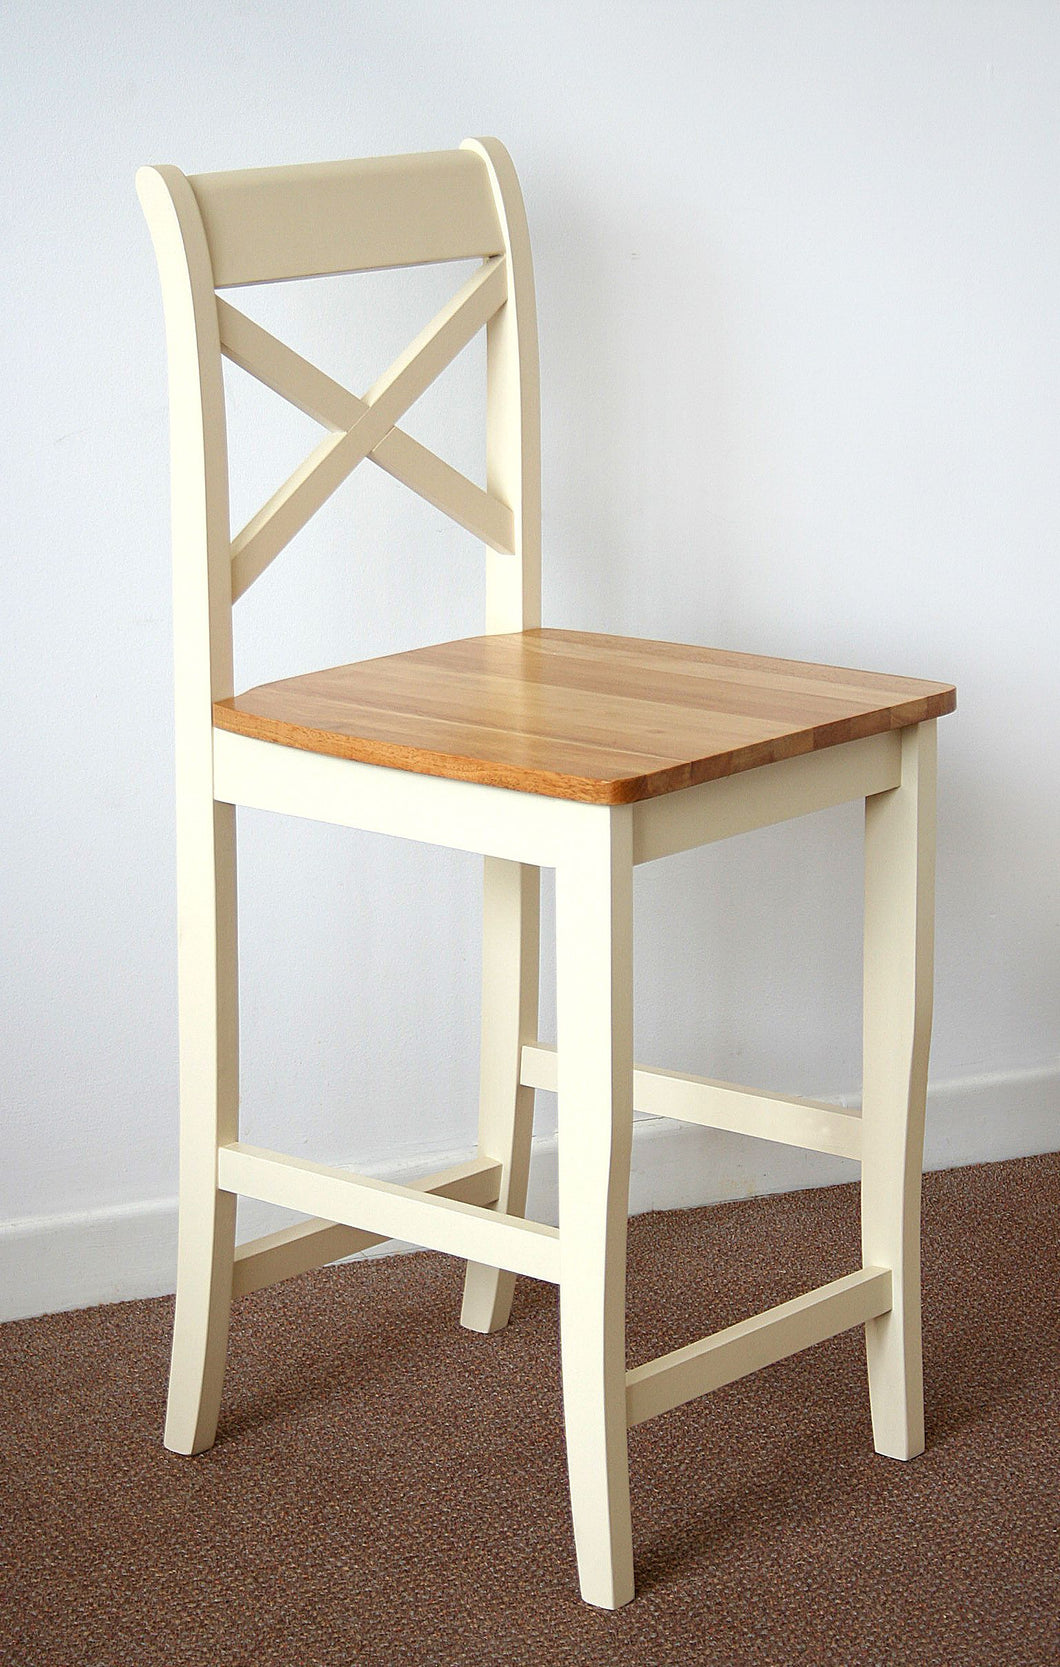 Clermont wooden bar stool in Cream/Oak with pu seat